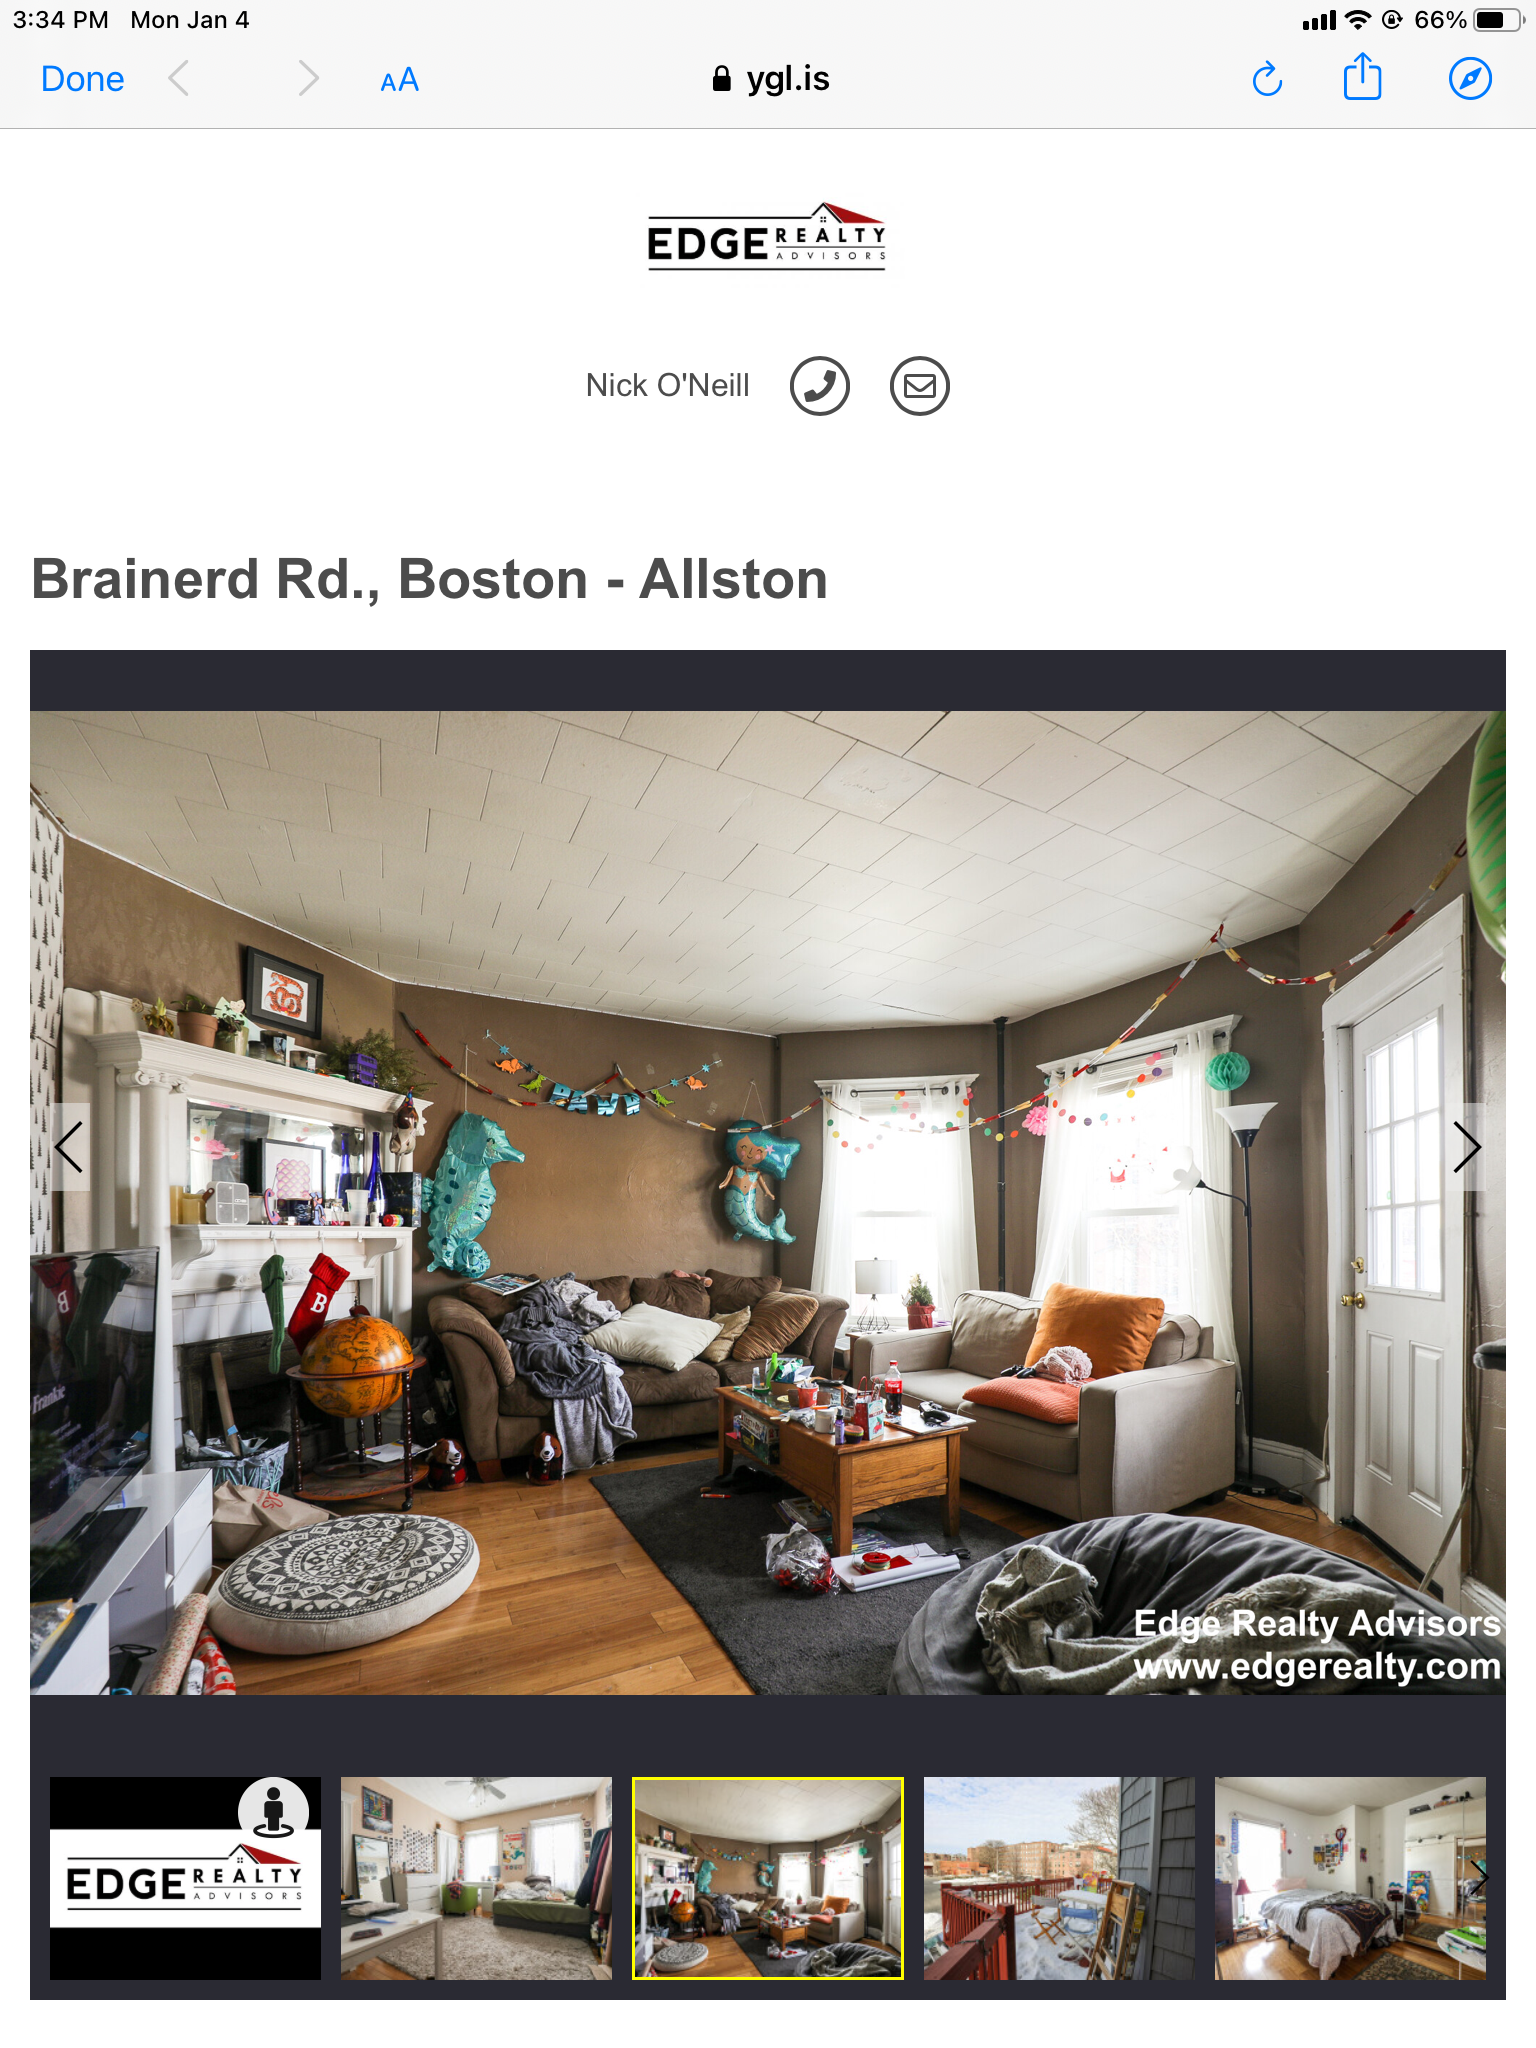 5 Beds, 2 Baths apartment in Boston, Allston for $4,500